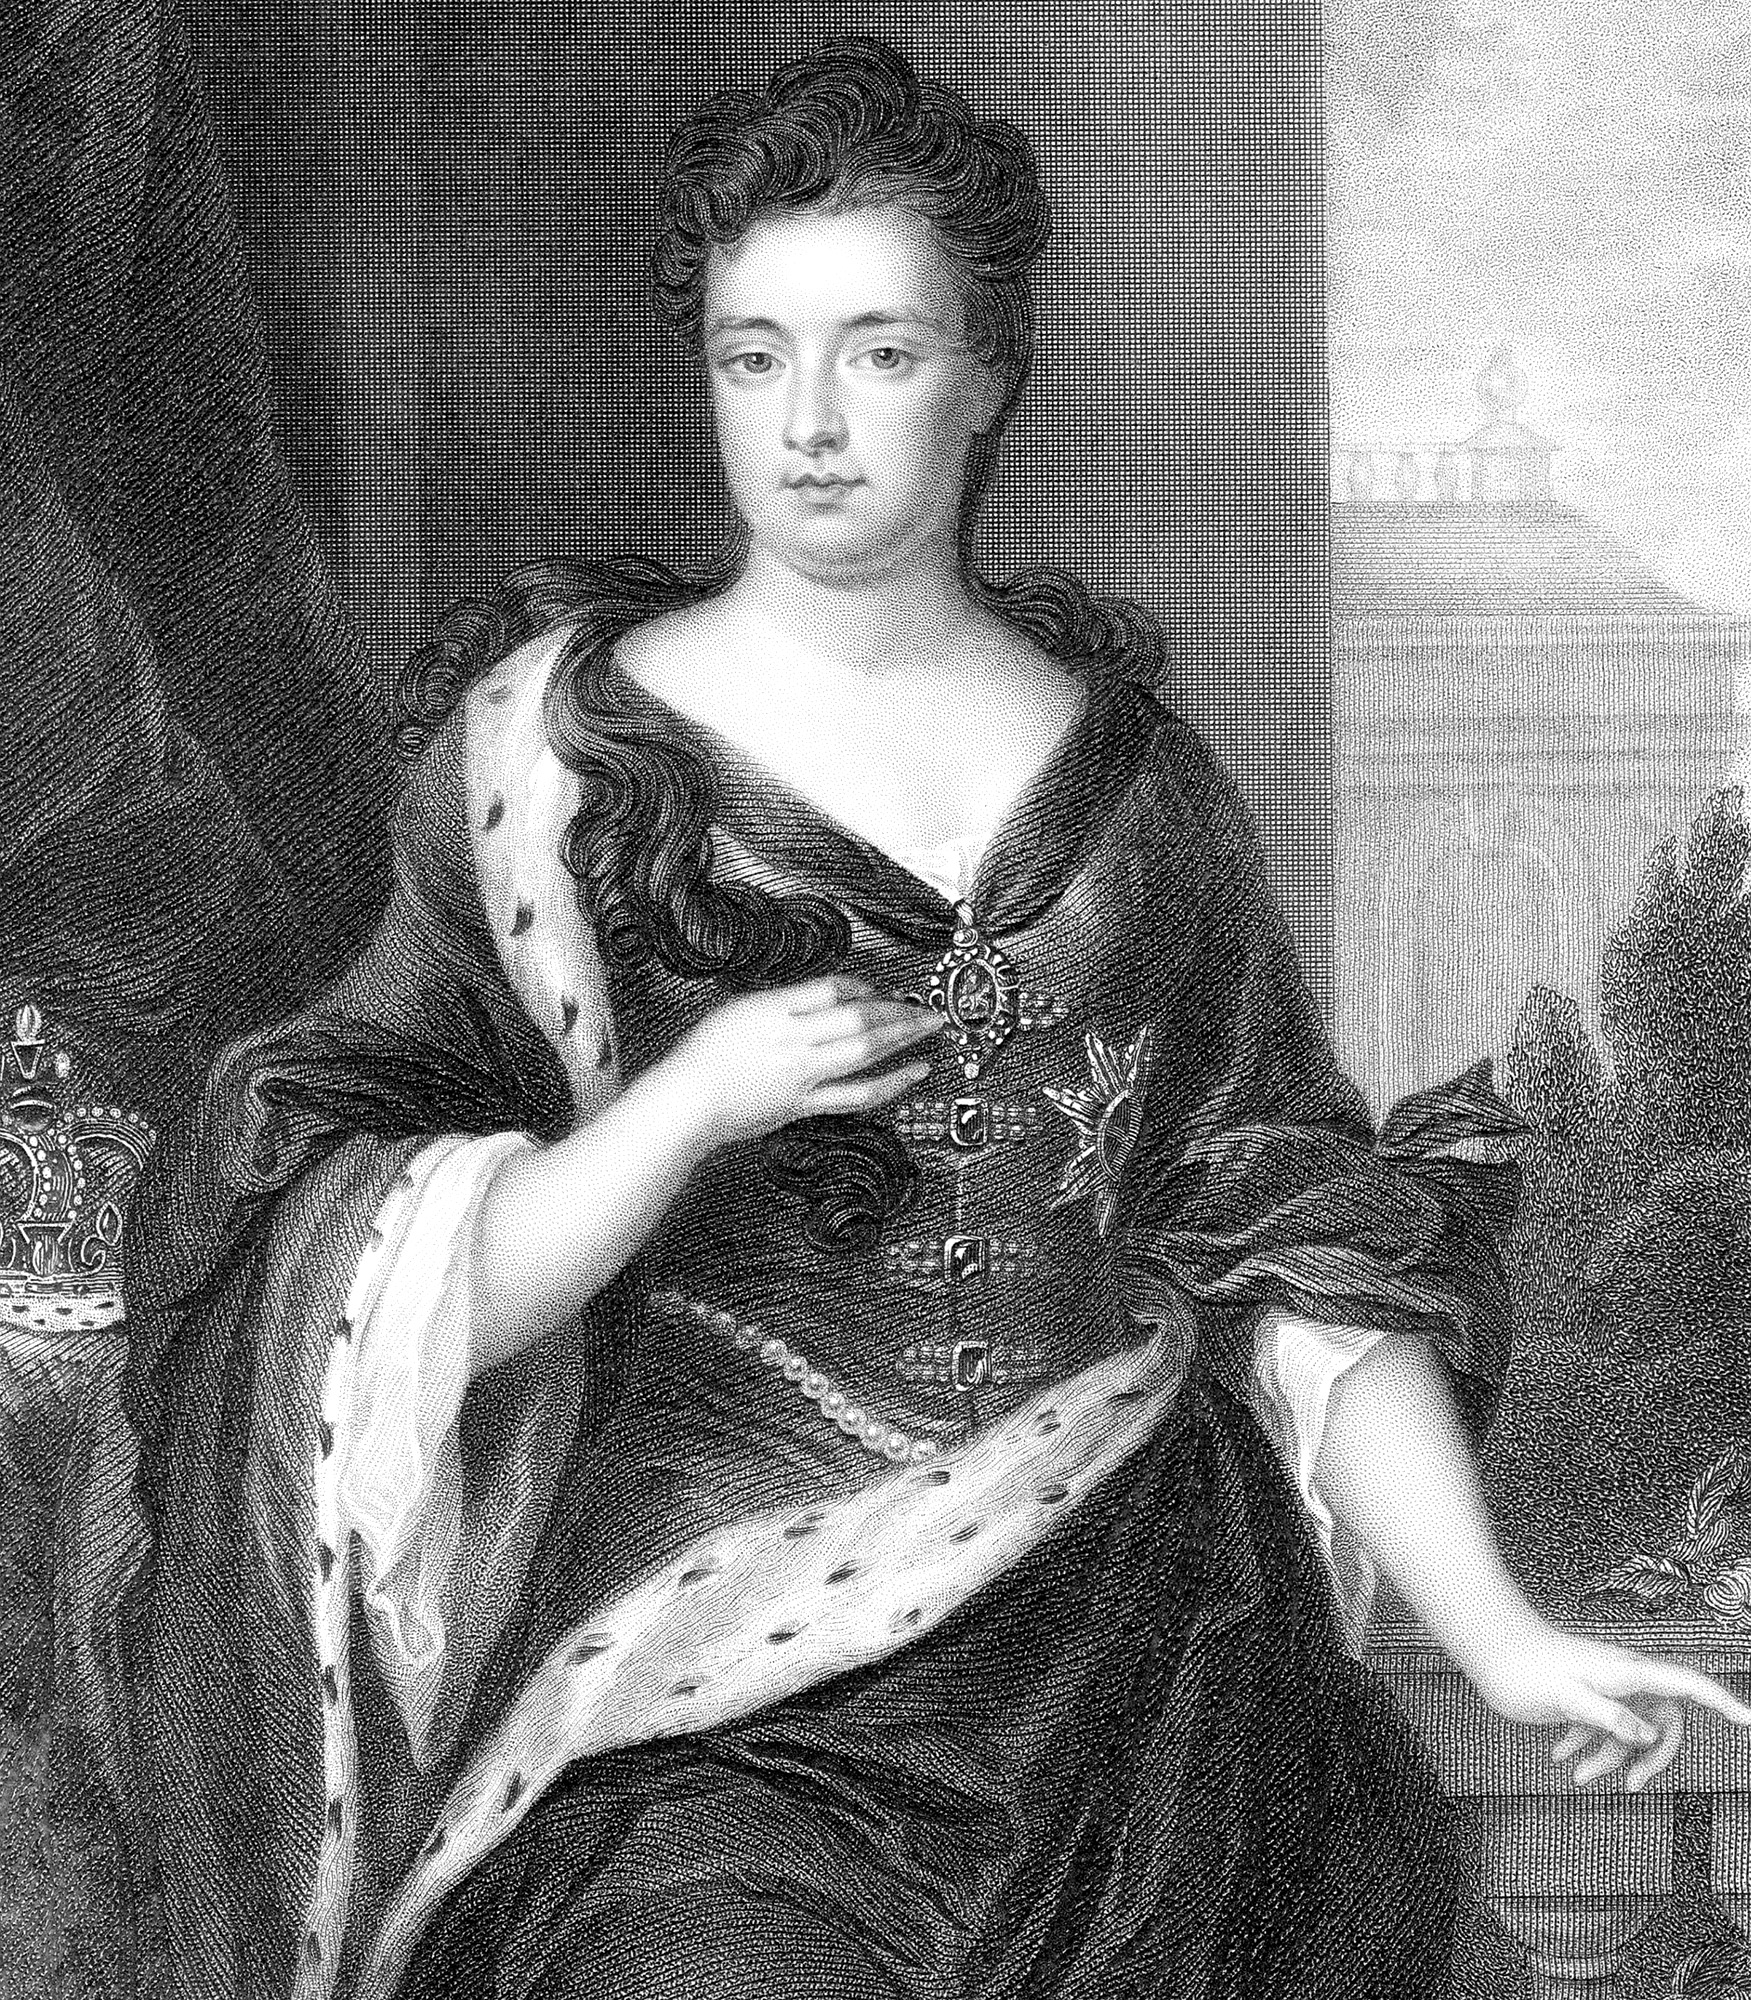 Anne (1665-1714), Queen of Great Britain and Ireland from 1702.